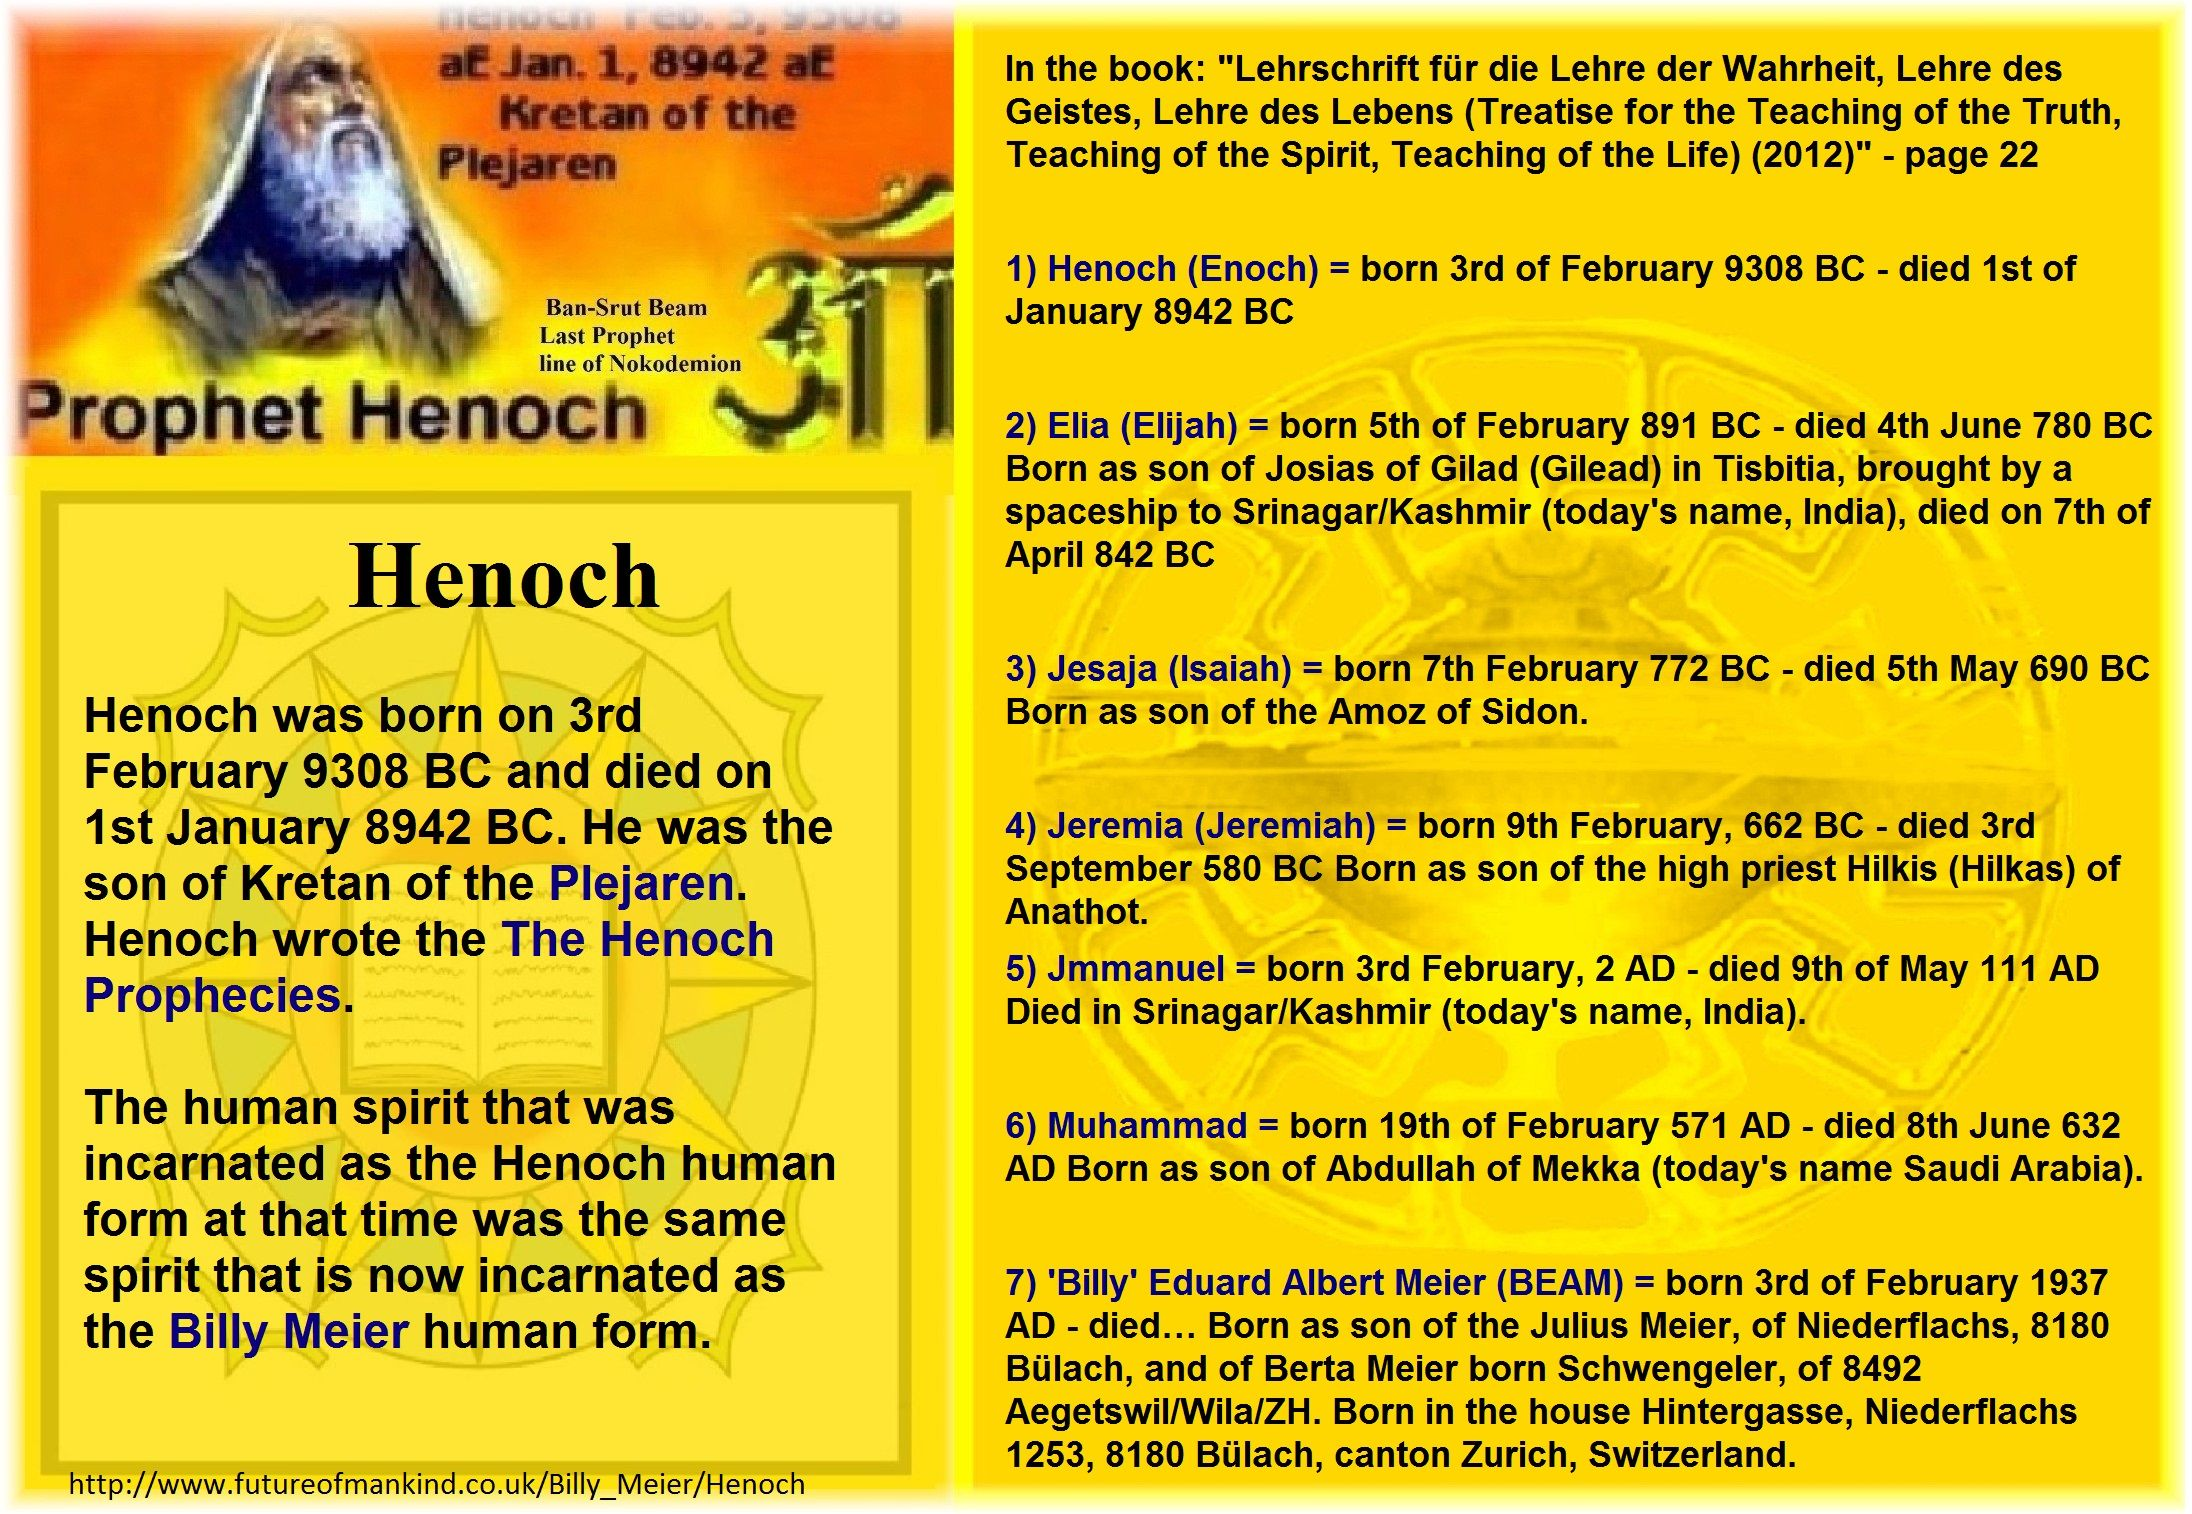 Henoch Henoch was born on 3rd February 9308 BC and died on